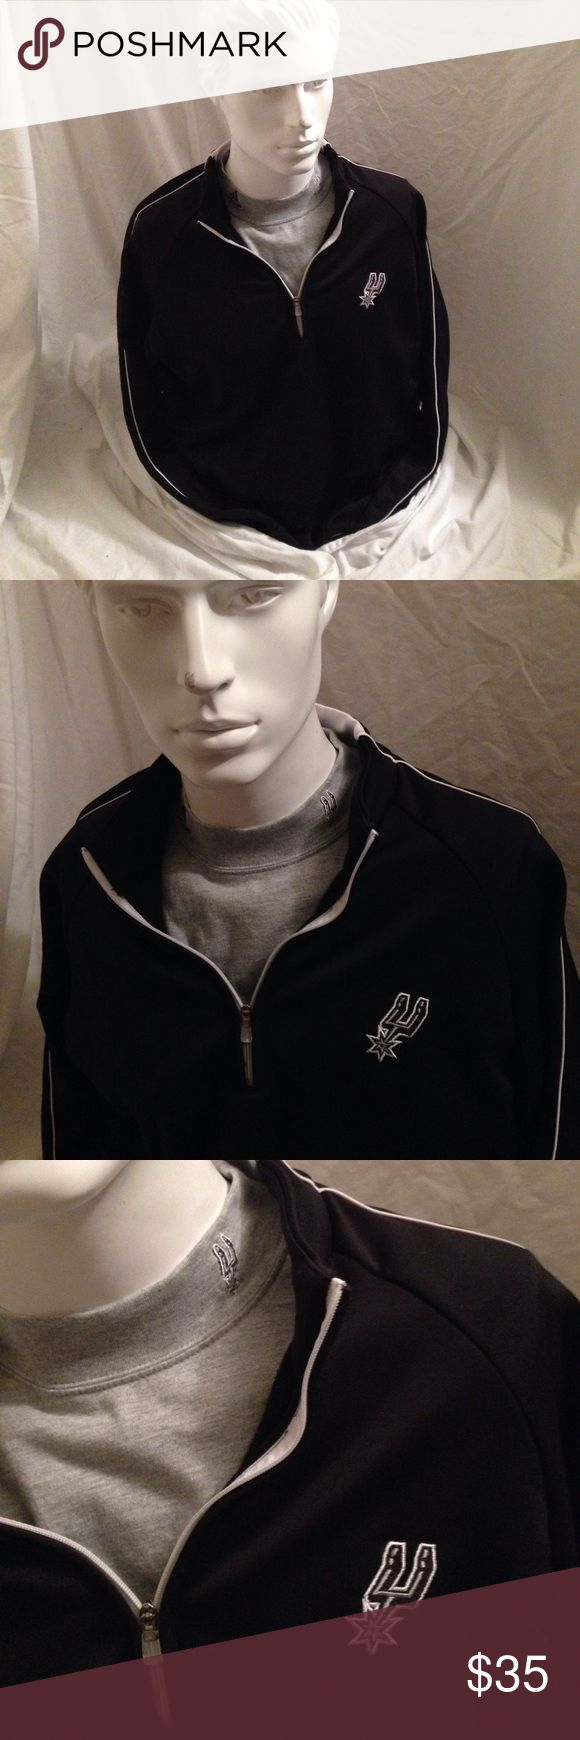 Adidas jacket and long sleeve undershirt 2-1 Both jacket and adidas long sleeve shirt are a matching San Antonio spurs logos on them and are both adidas this set runs at about 150$ it was a gift for me when I went to my first basketball game but I'm not a fan lol sorry guys !! I'm open to offers just make sure you use the offer button please and thank you 😊 adidas Shirts Sweatshirts & Hoodies